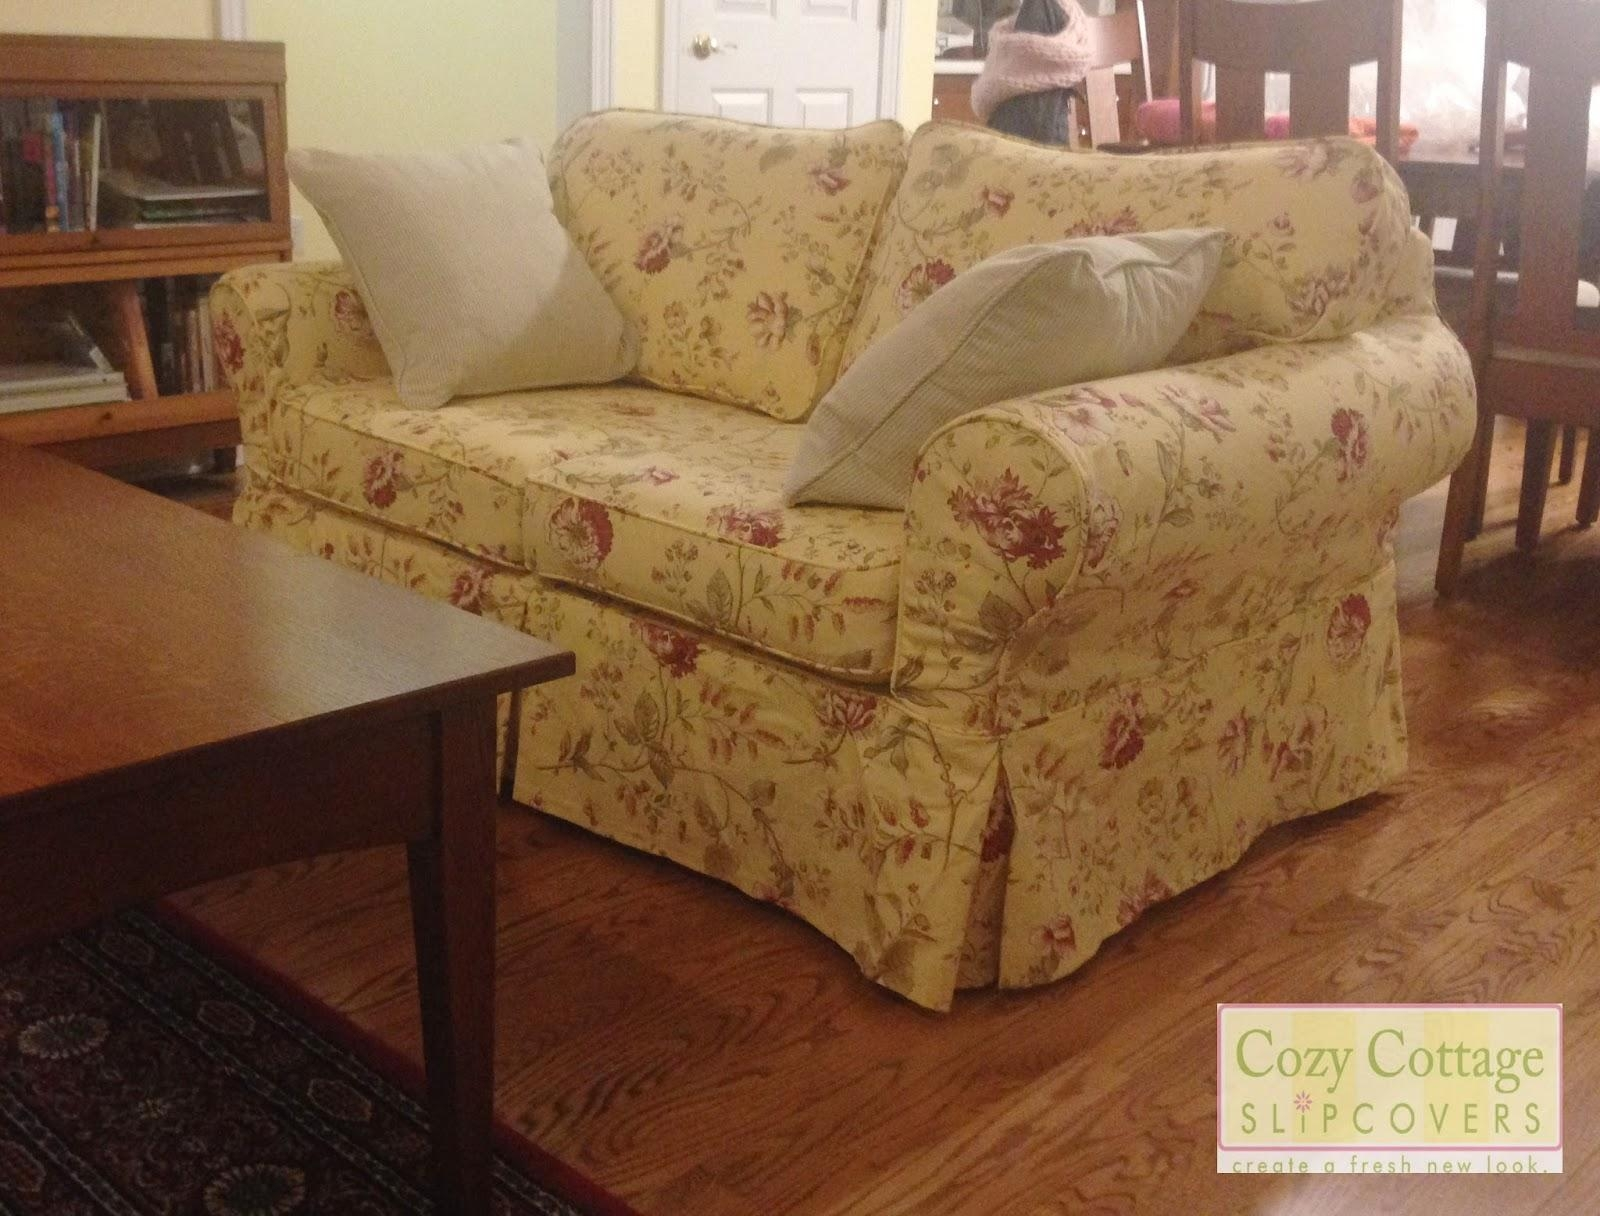 Cottage Sofas And Chairs | Tehranmix Decoration With Regard To Country Cottage Sofas And Chairs (View 3 of 20)